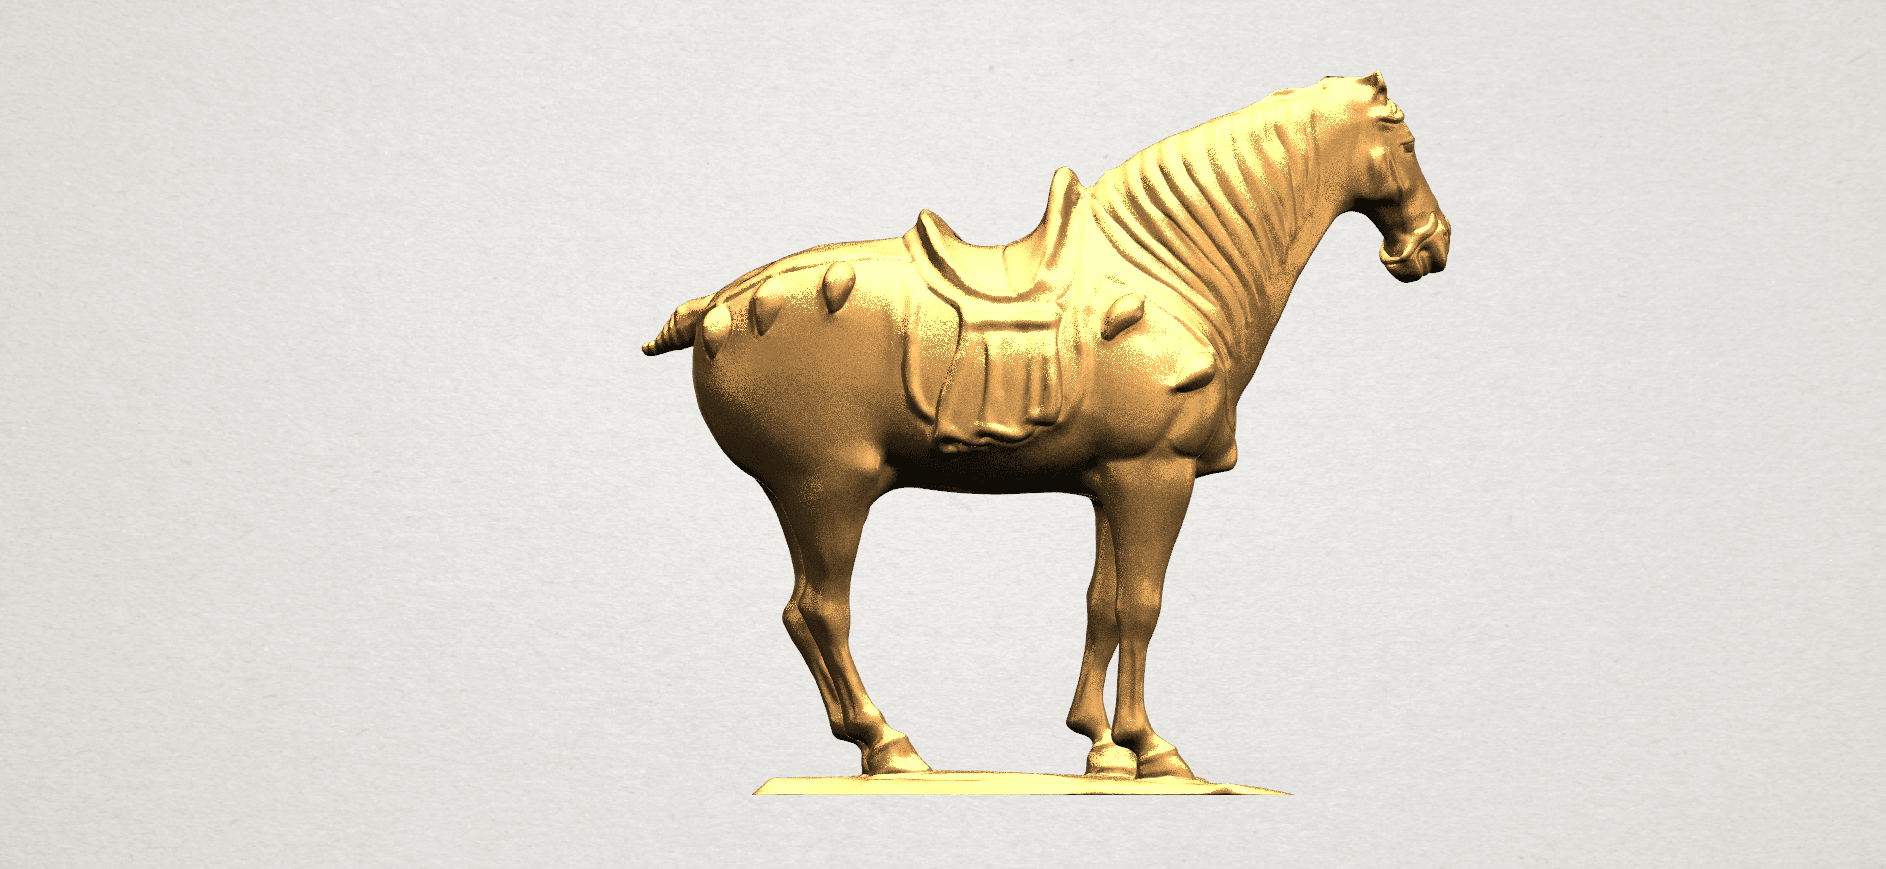 Horse (iv) A05.png Download free STL file Horse 04 • 3D print design, GeorgesNikkei